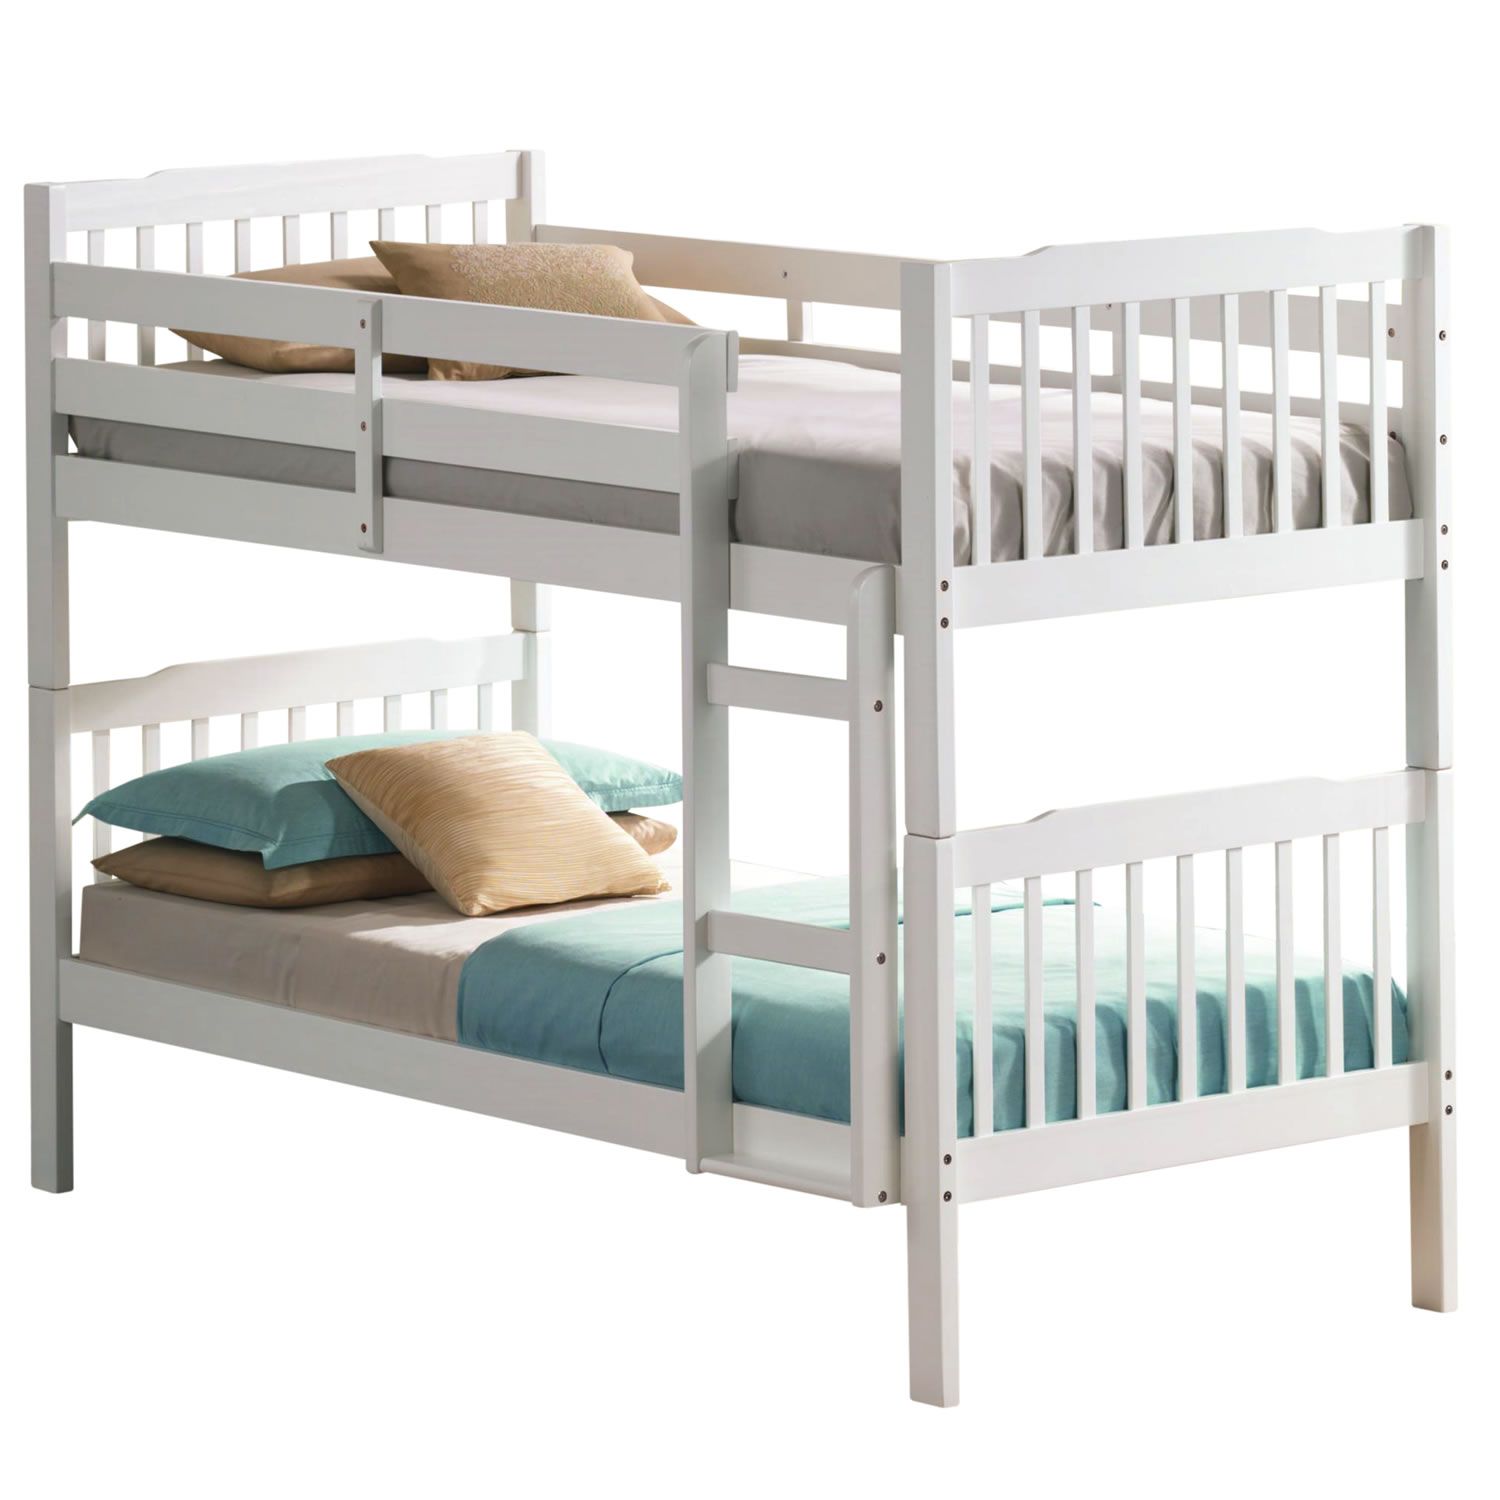 Image of: White Bunk Beds Silver